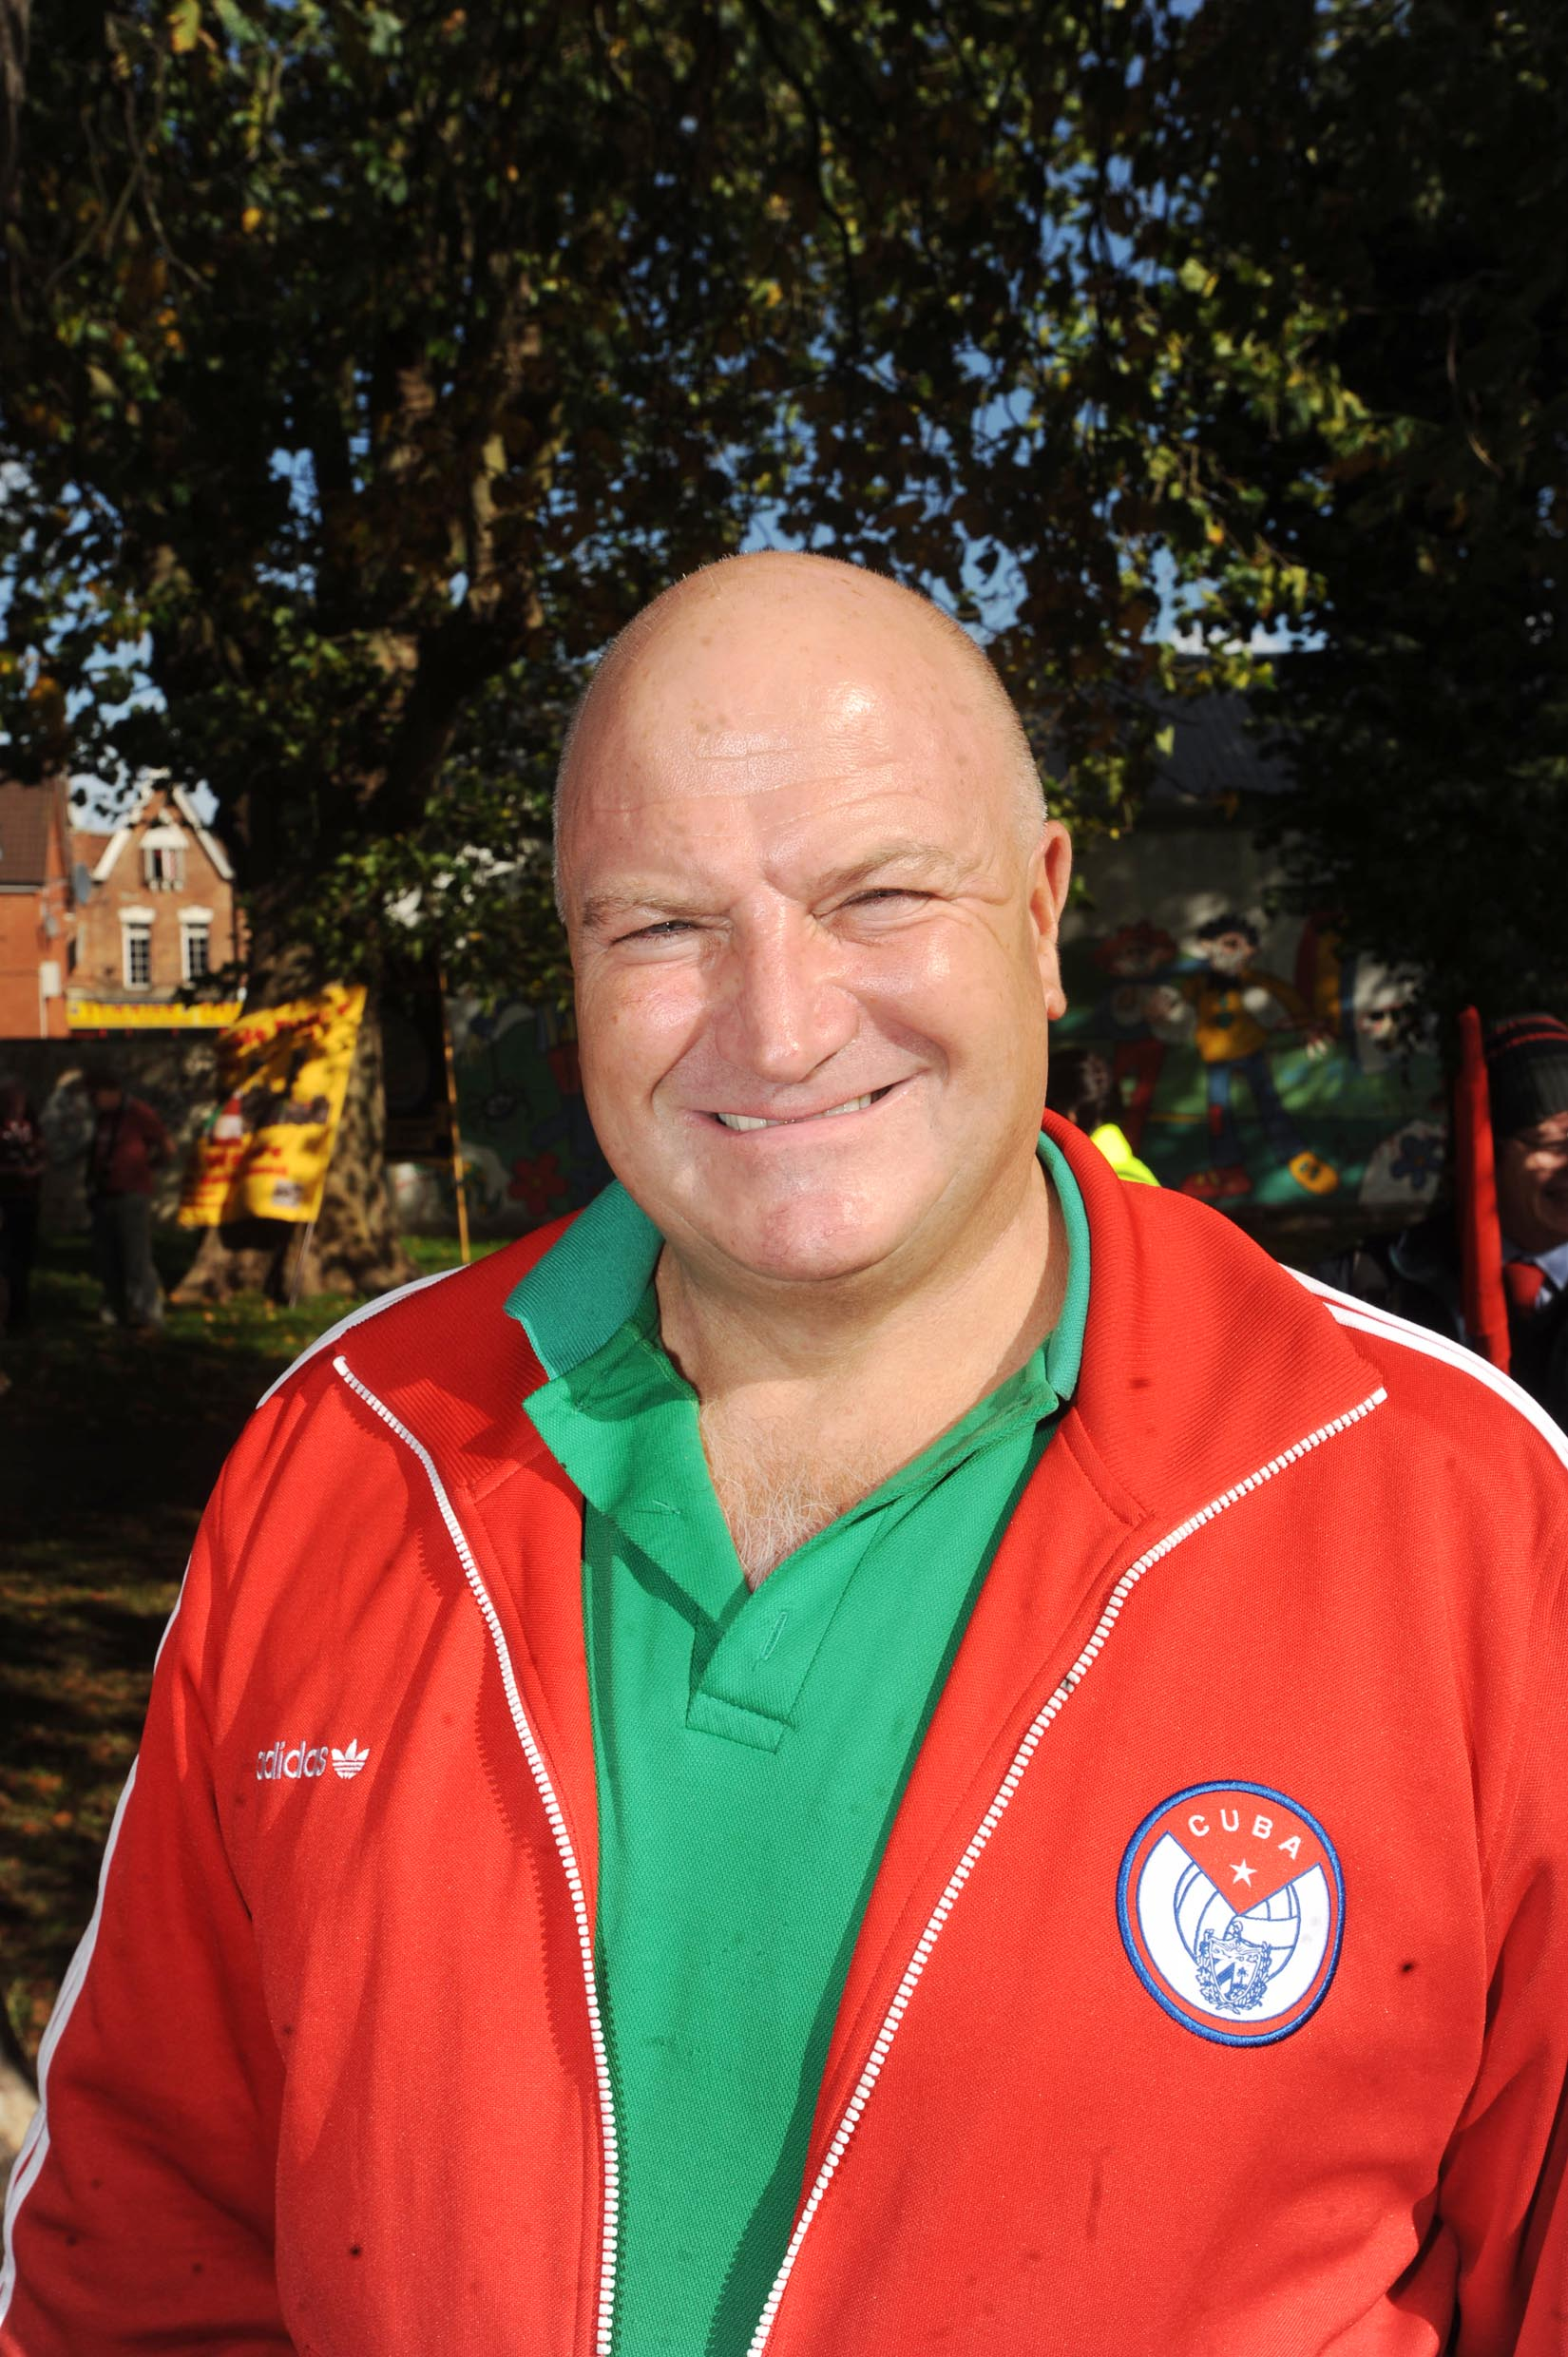 RMT union boss Bob Crow dies